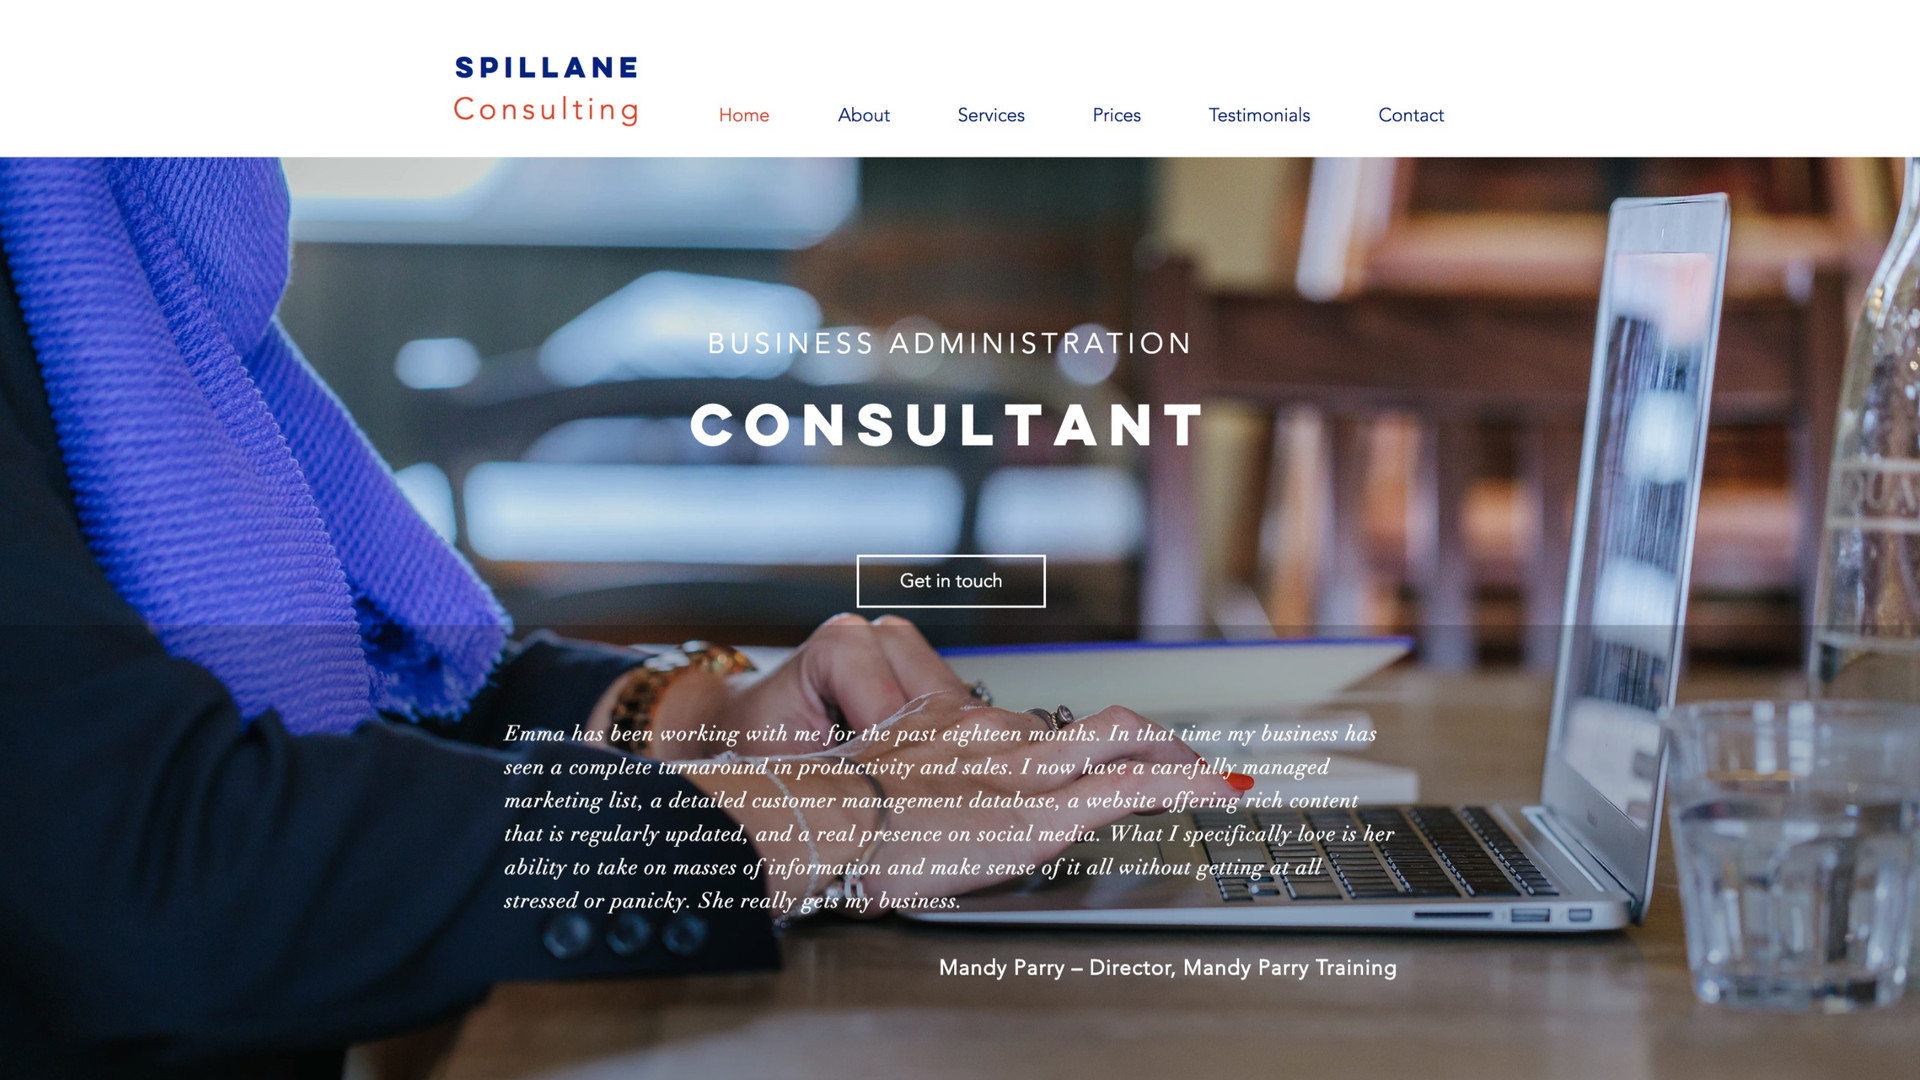 Spillane Consulting